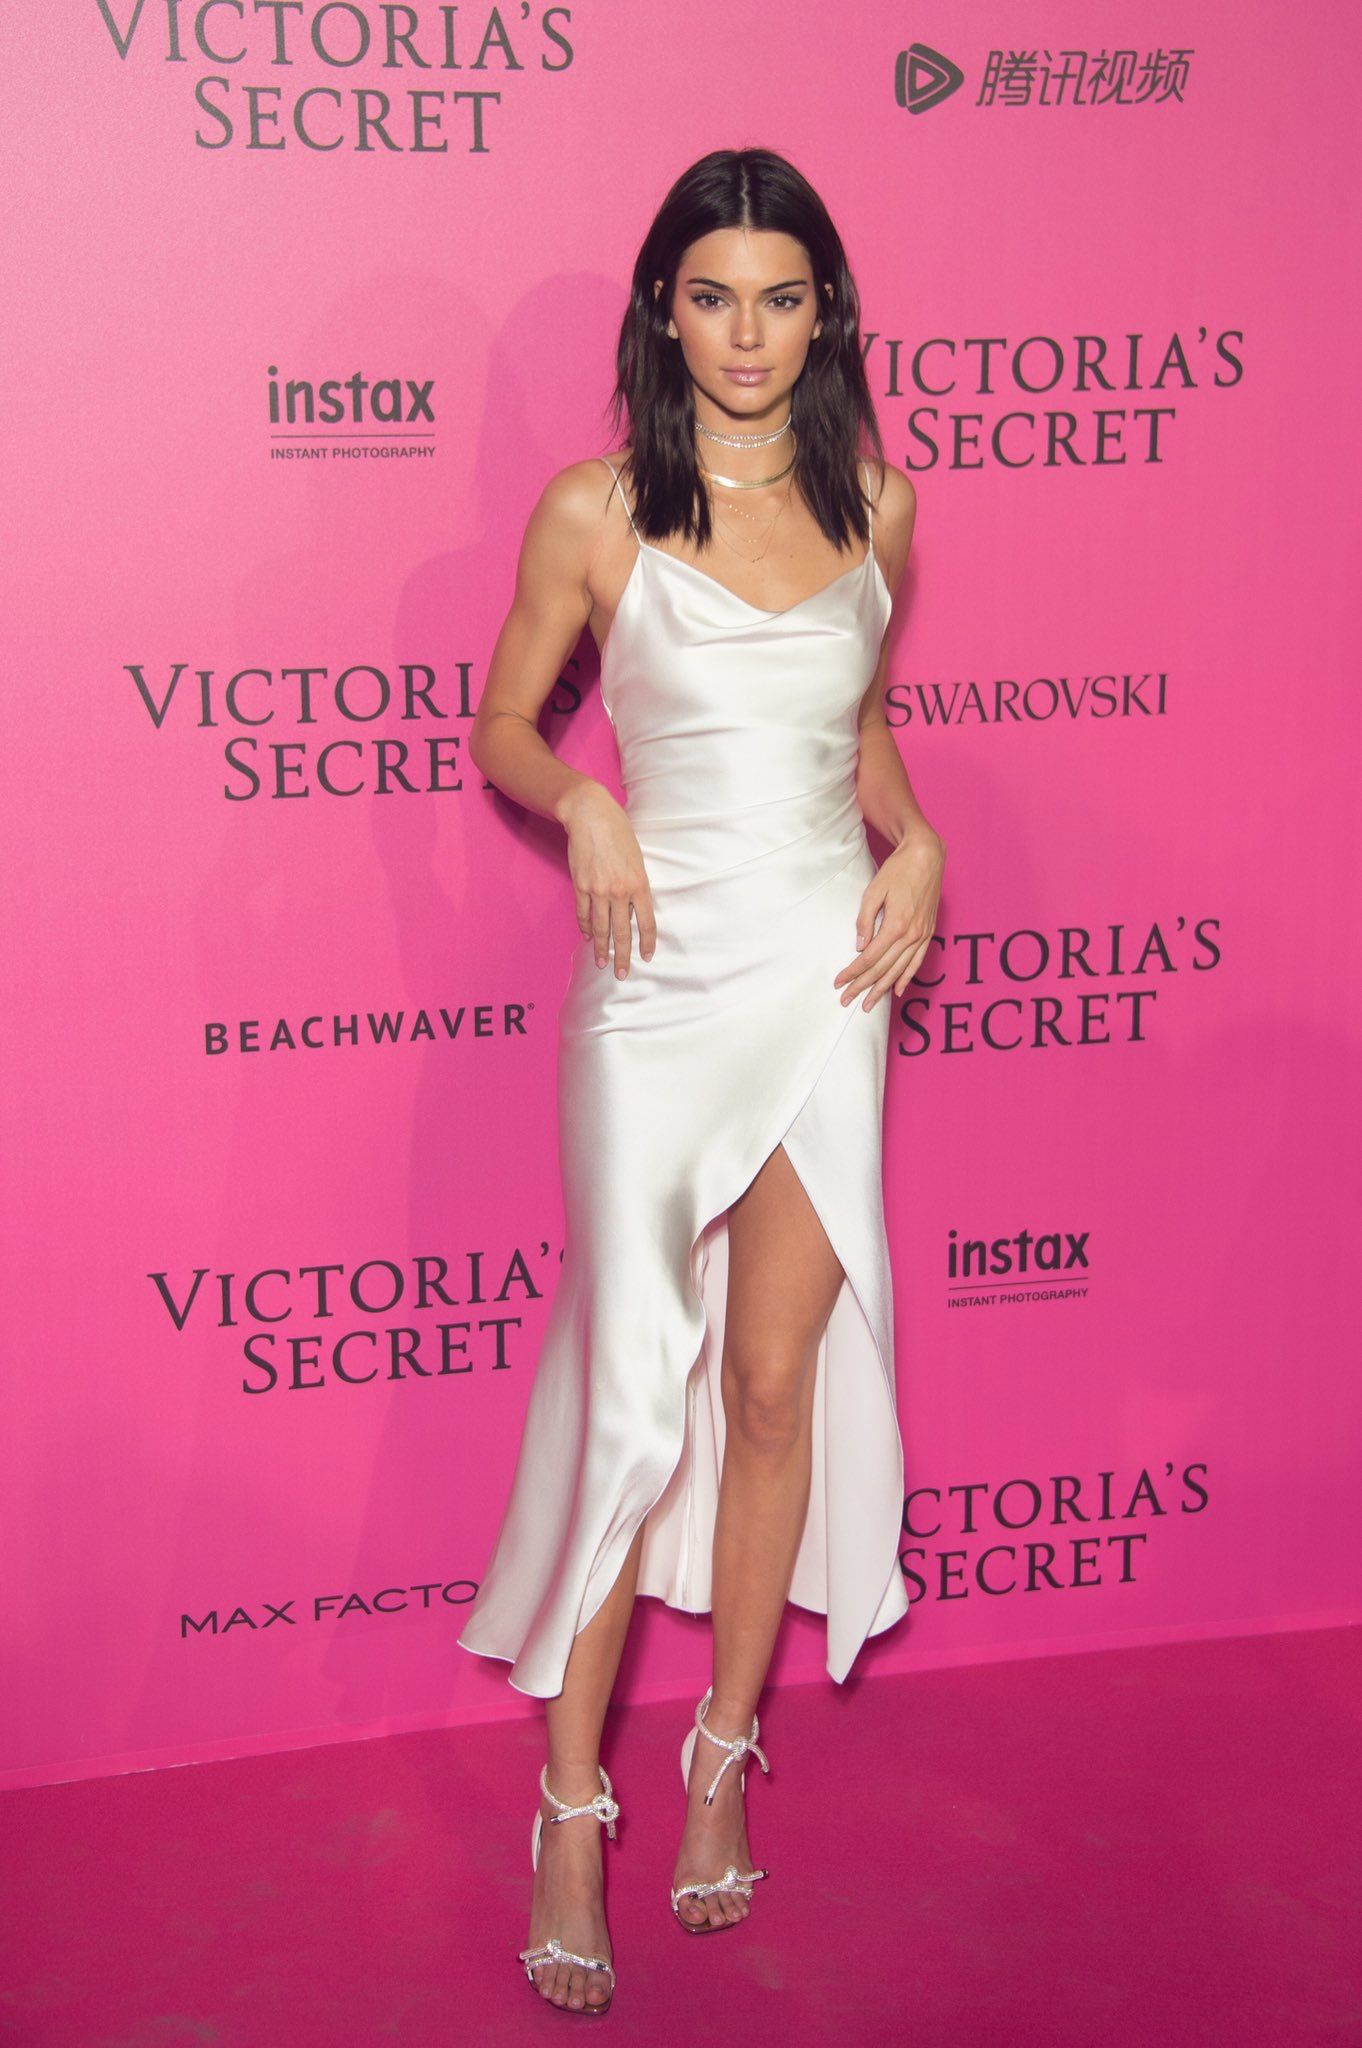 Wedding attendee dresses  Kendall Jenner   dresses uc  Pinterest  th Kylie and Silk